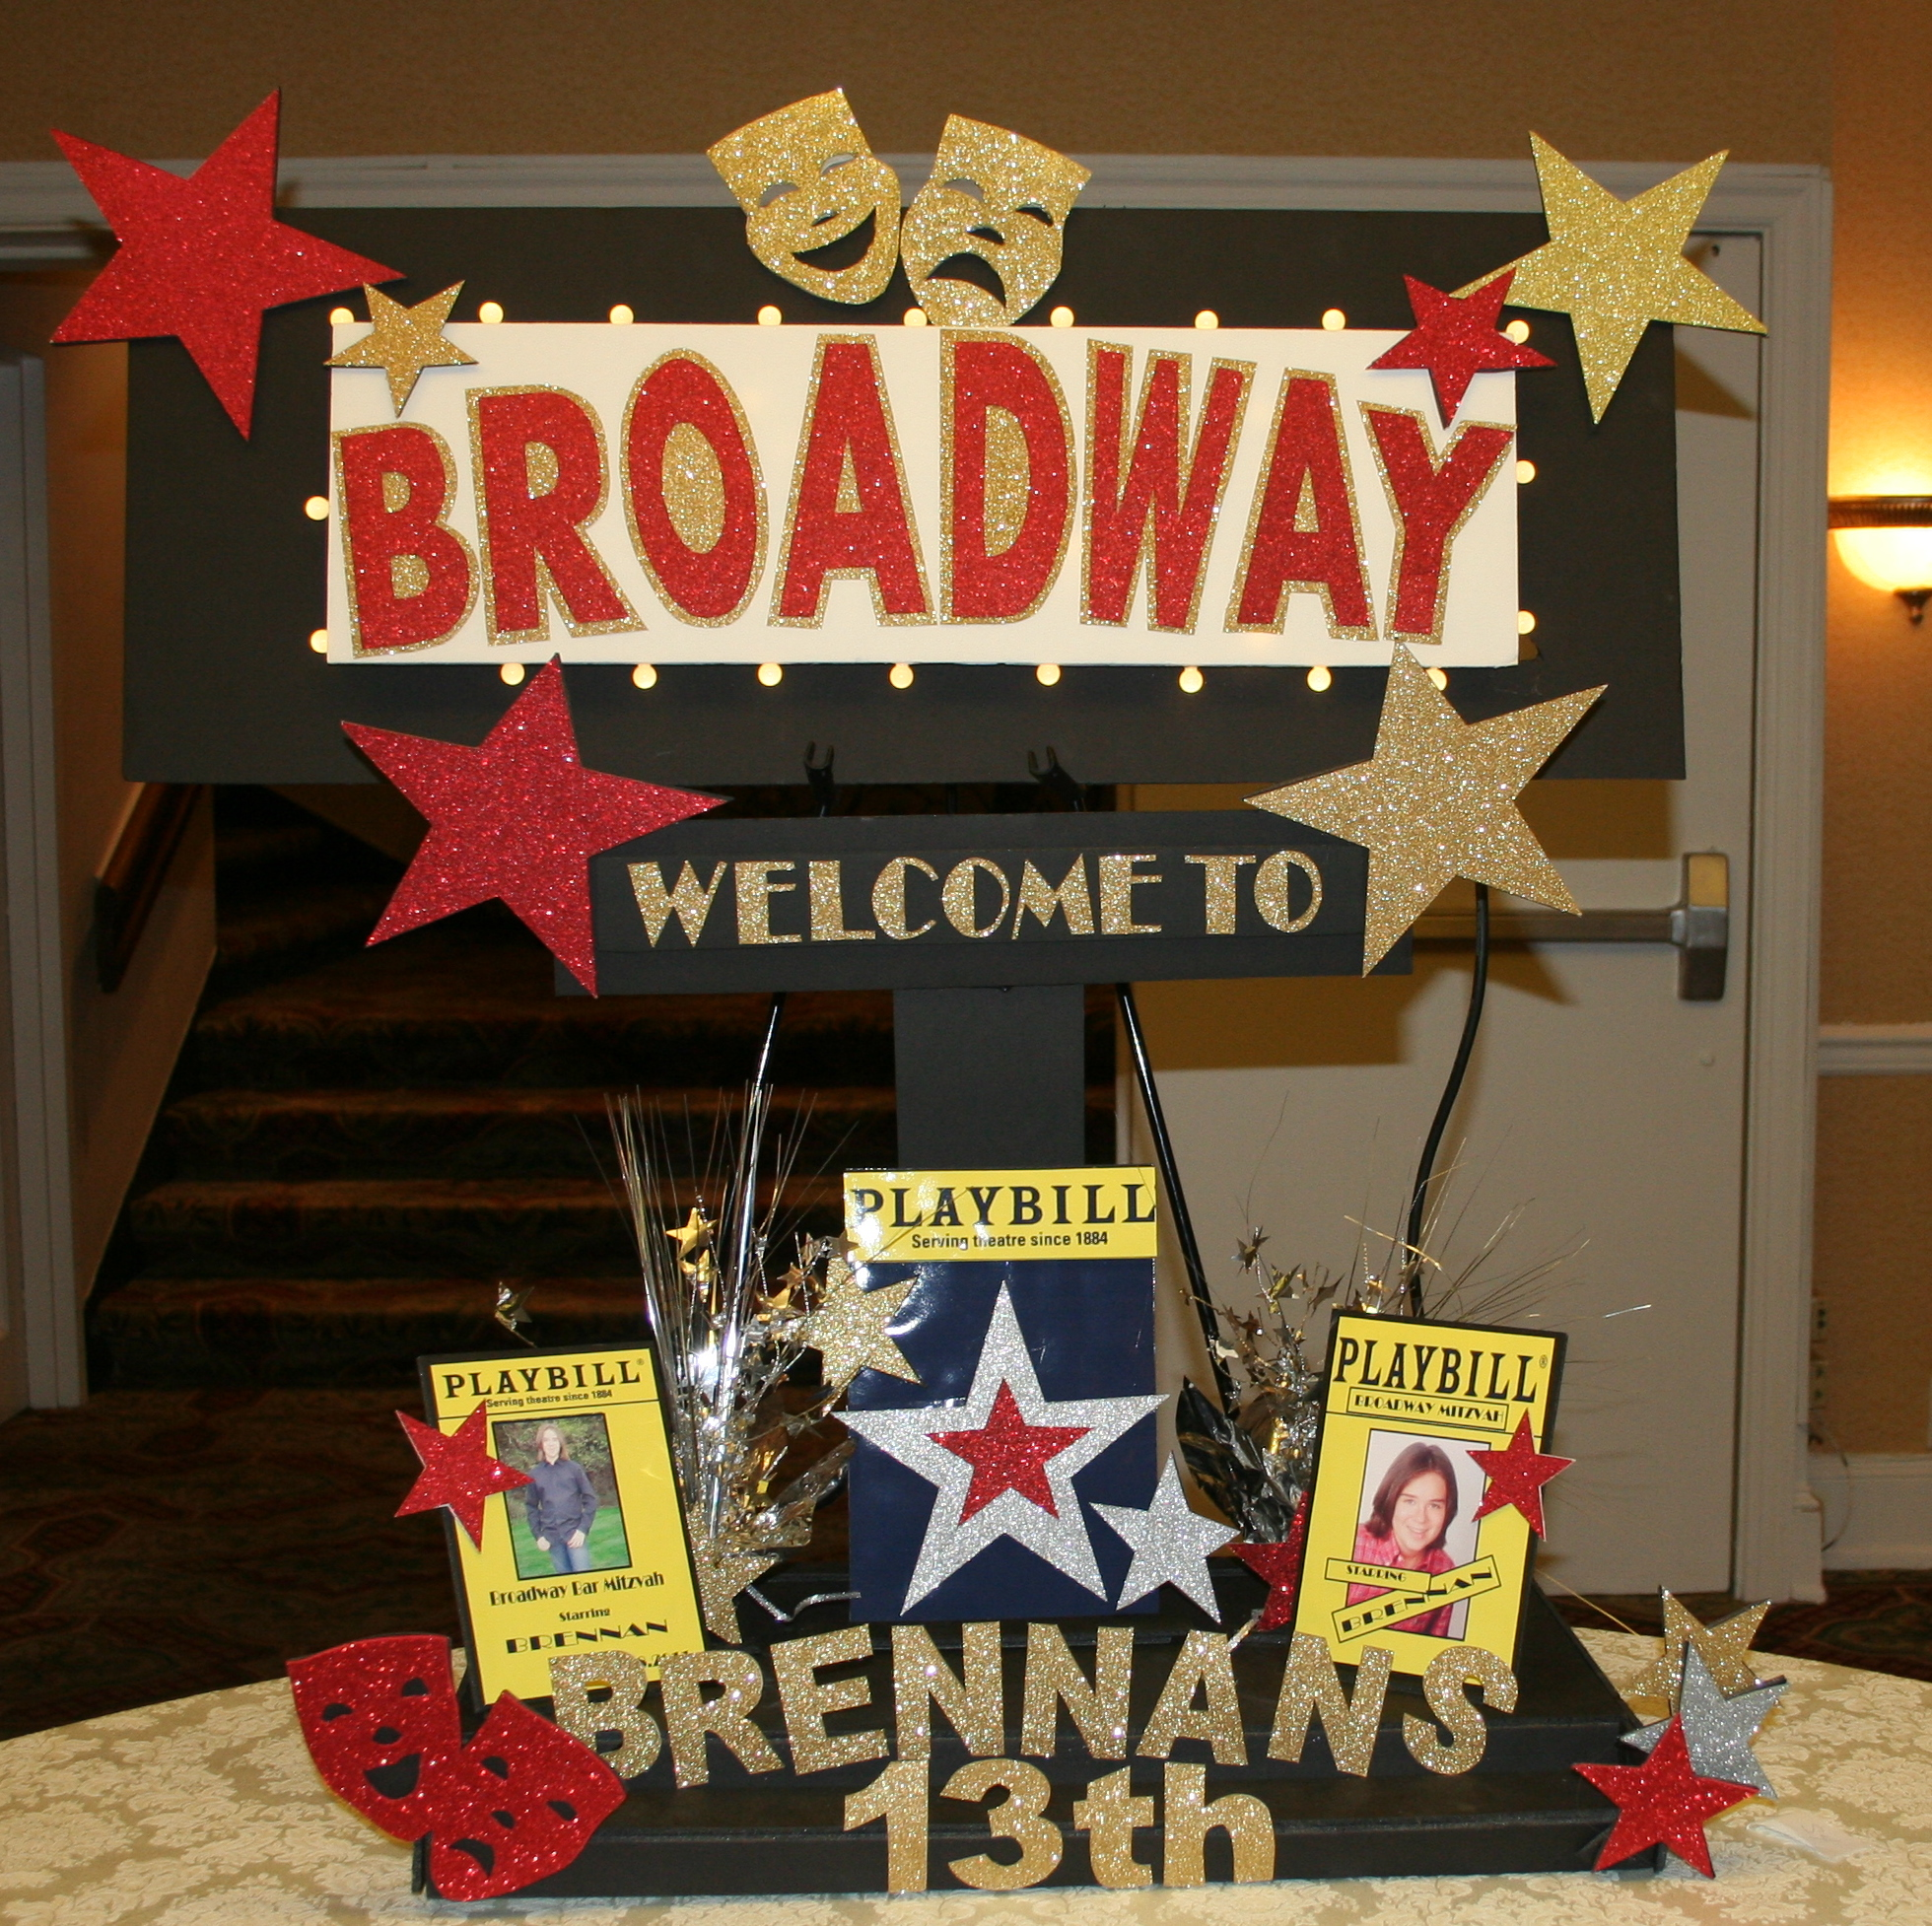 Broadway Themed Party Ideas